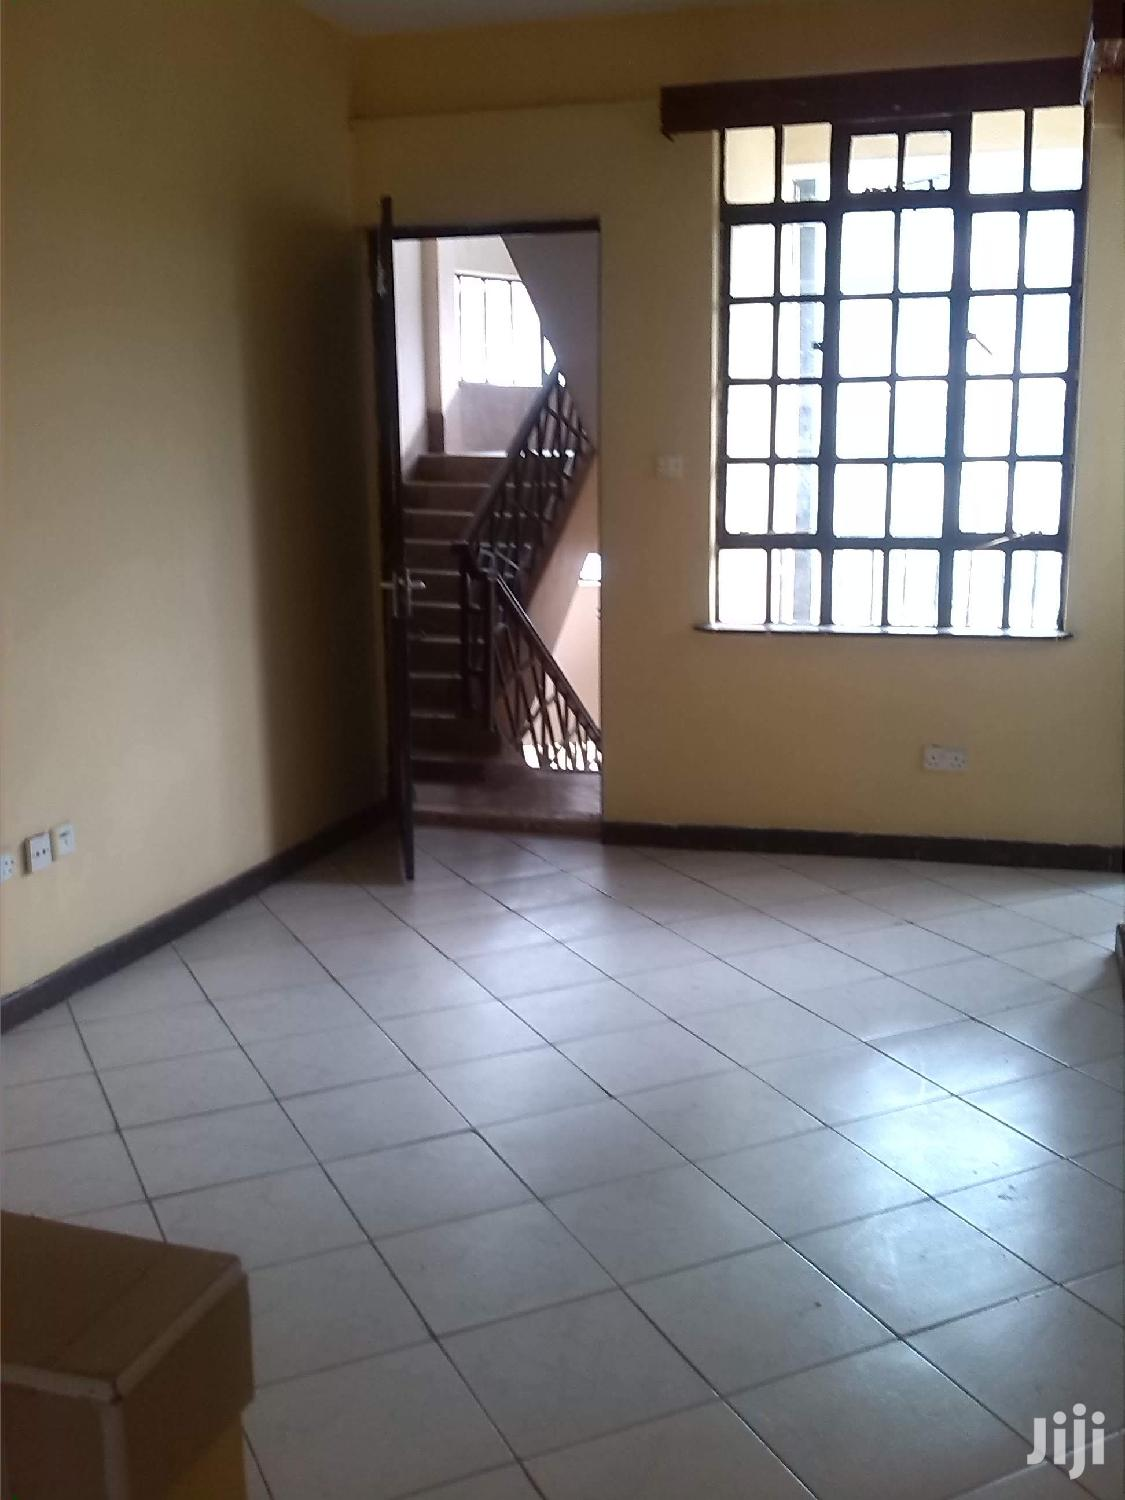 Property World;2brs Apartment With Excellent Finish and Safe | Houses & Apartments For Rent for sale in Kilimani, Nairobi, Kenya